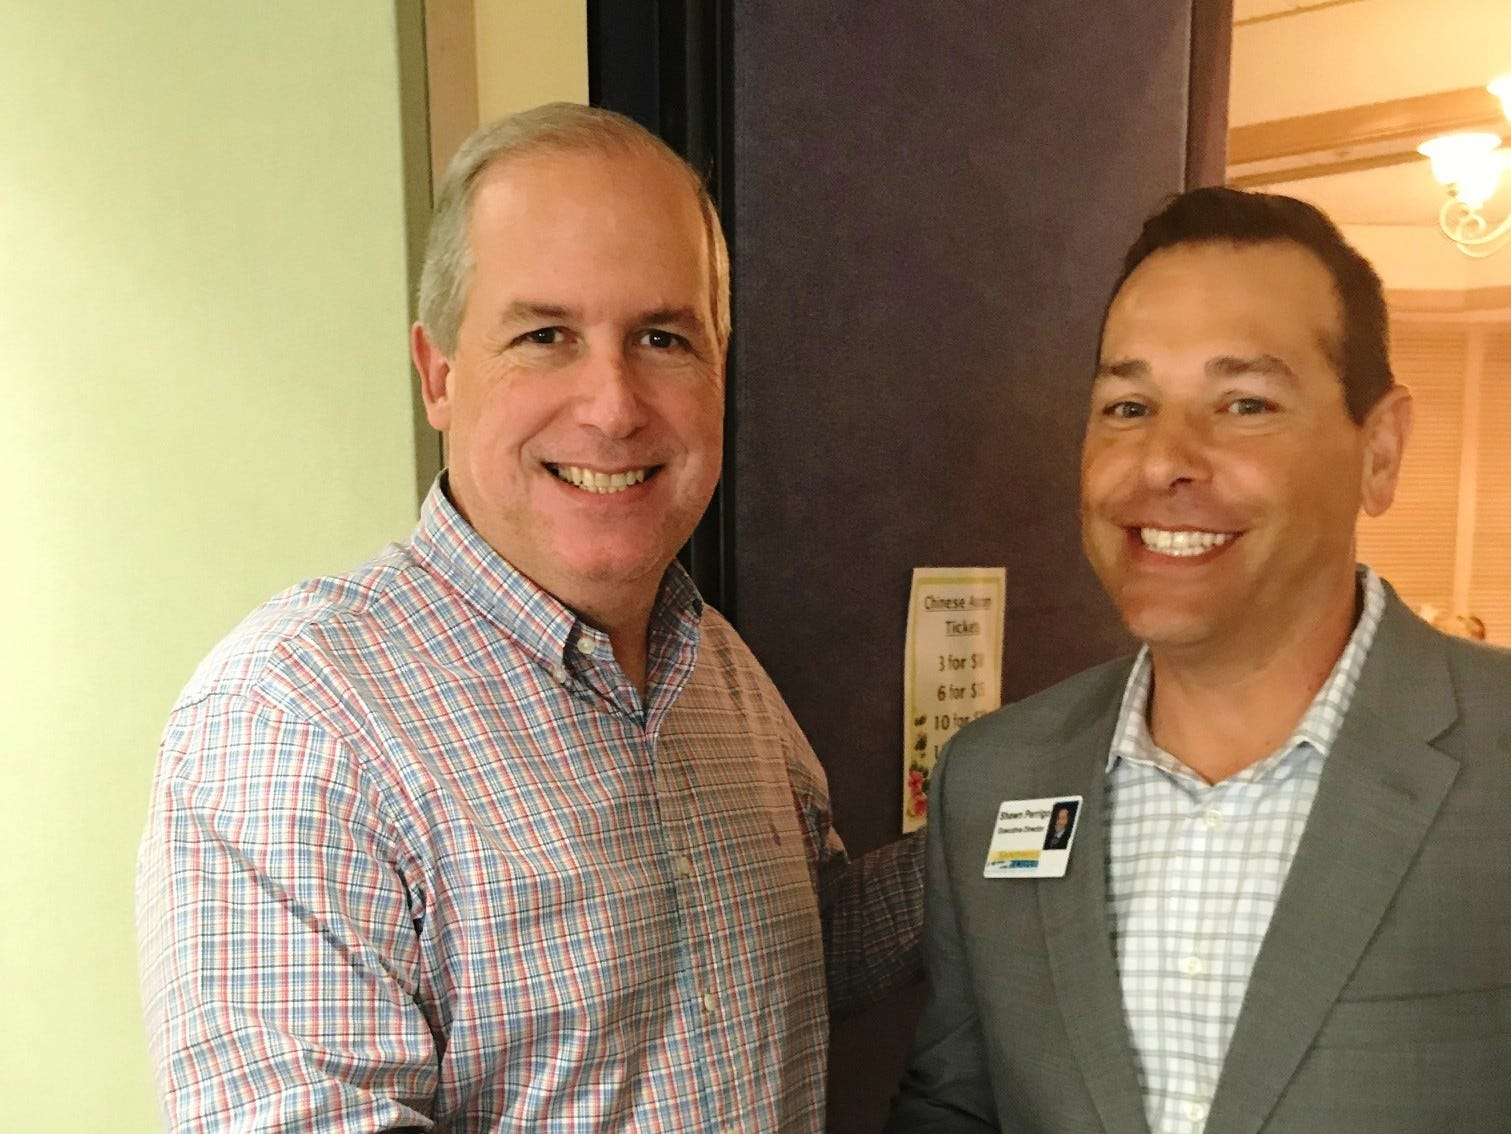 Martin County Commissioner Ed Ciampi, left, and Shawn Perrigo, executive director of Sandhill Cove Retirement Living, at the Kick-off Gala for Garden Club of Stuart's Secret Gardens Tour.